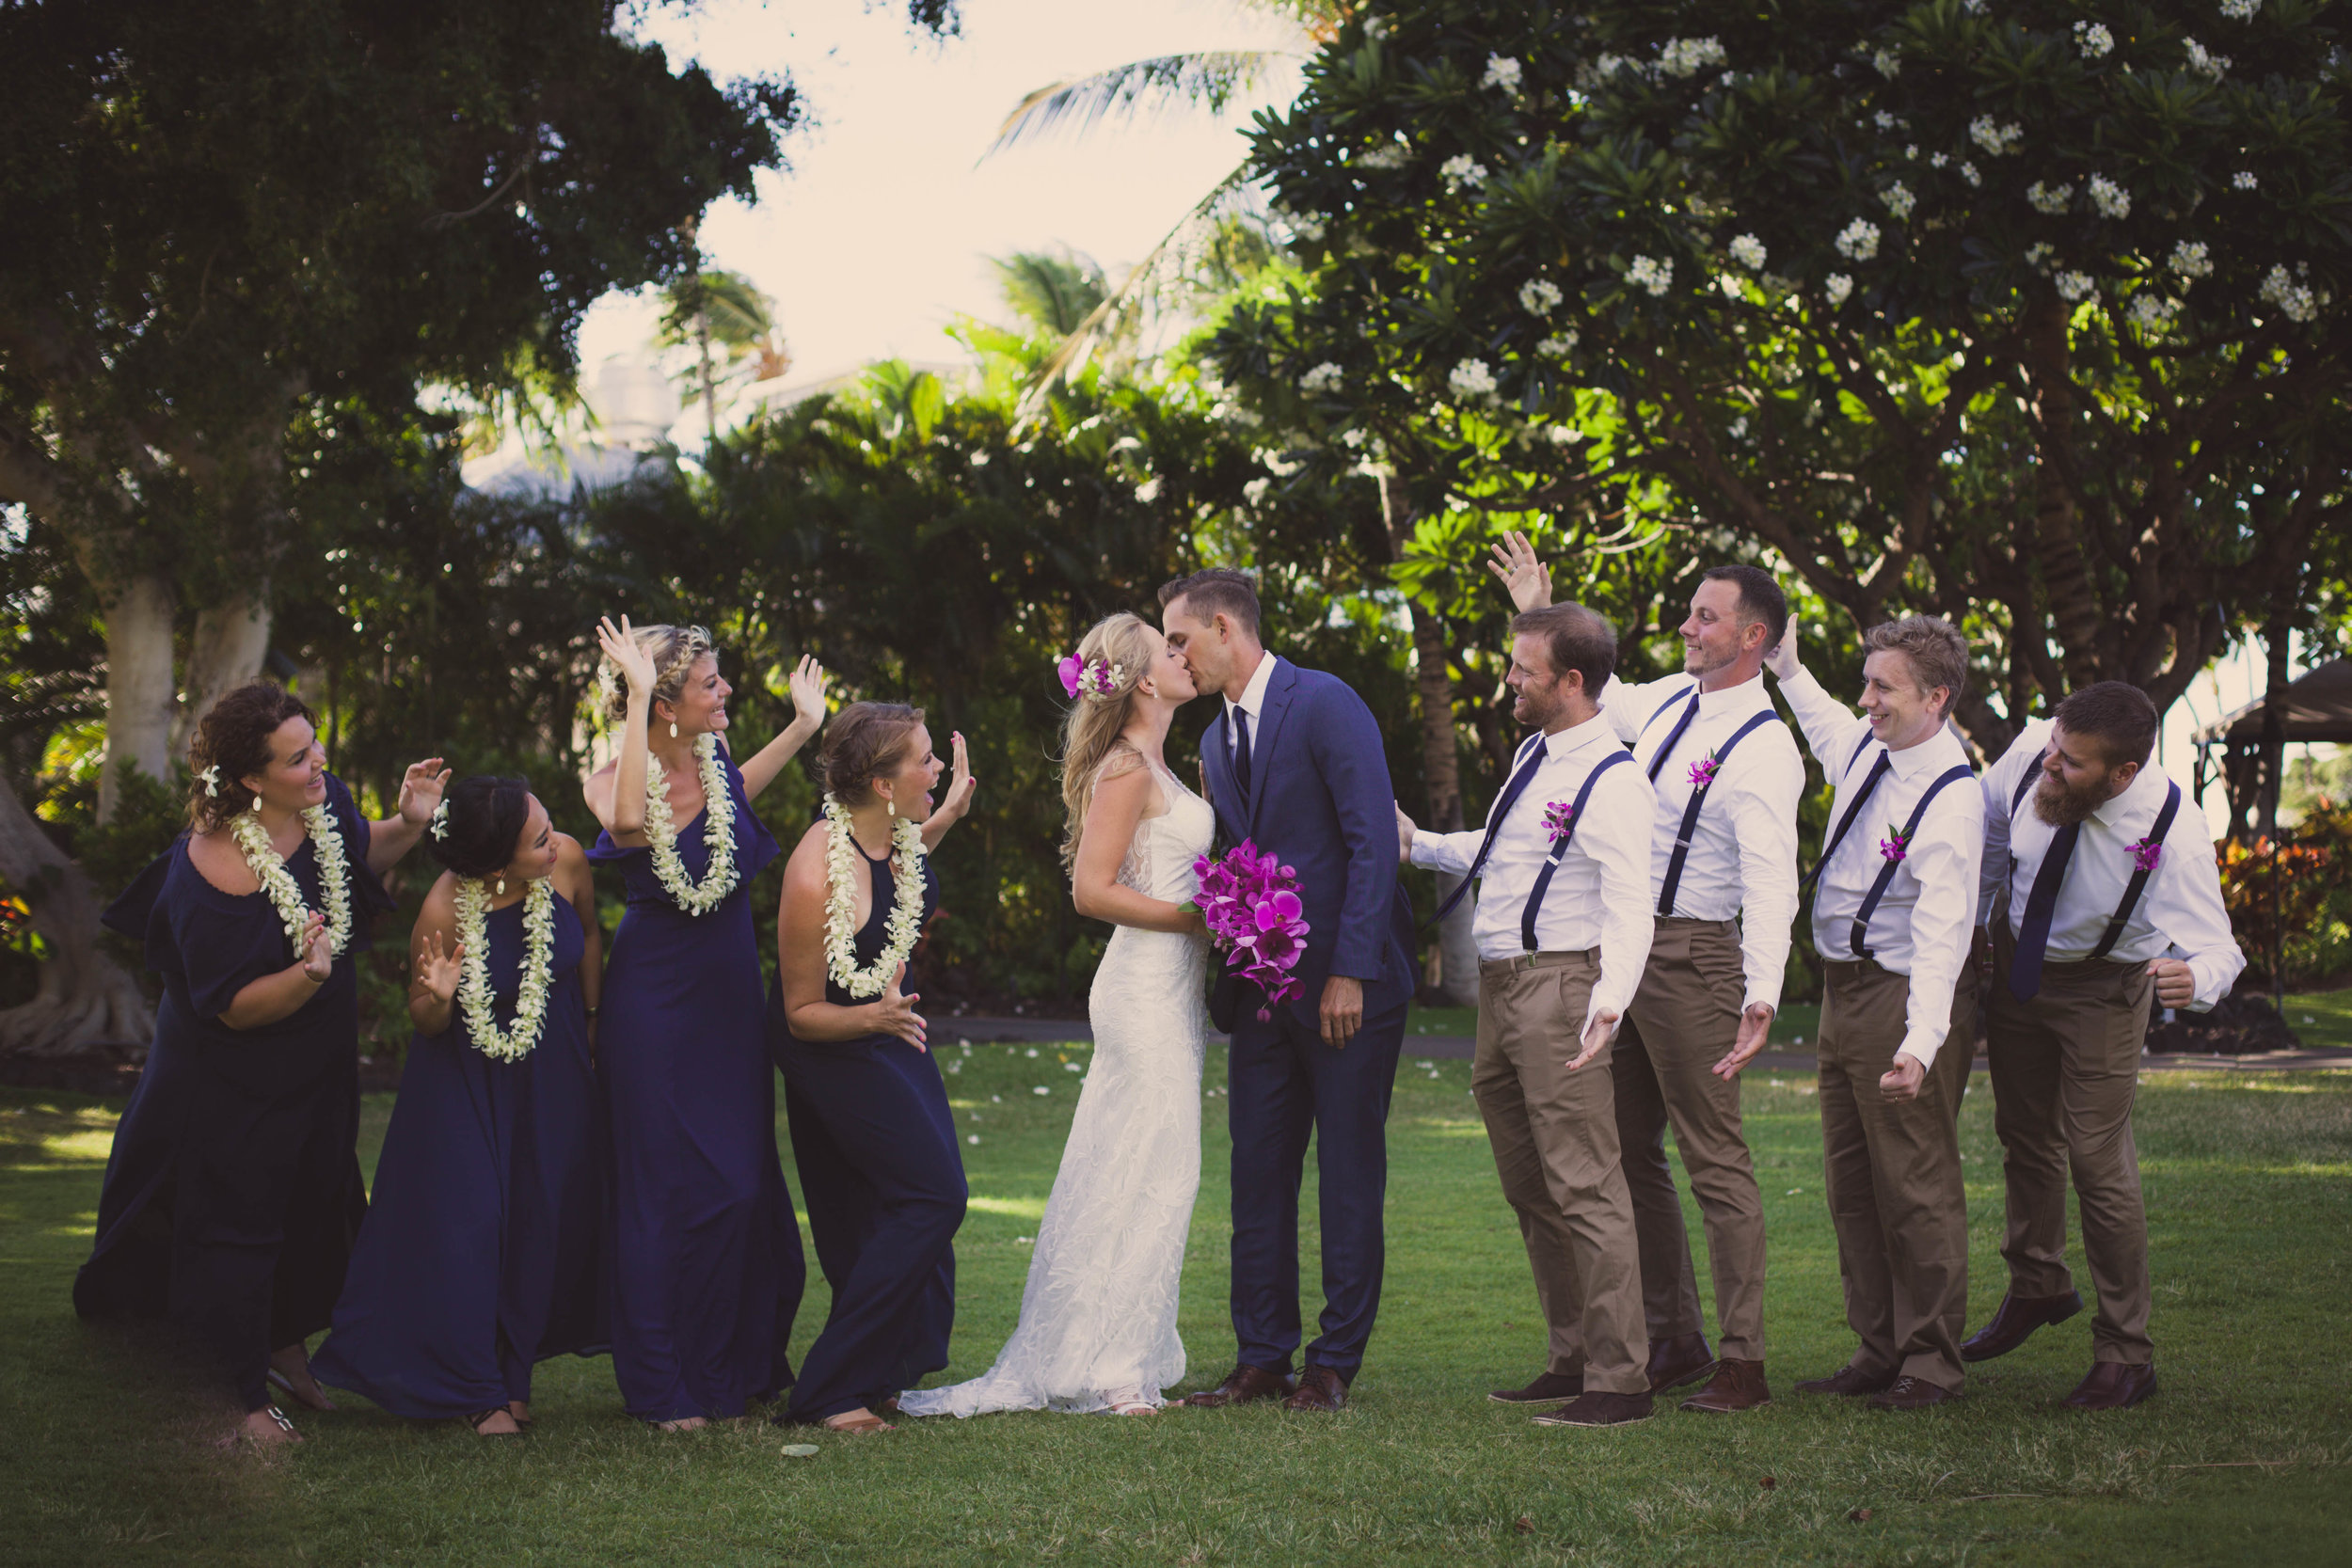 big island hawaii fairmont orchid beach wedding © kelilina photography 20170812170210-1.jpg